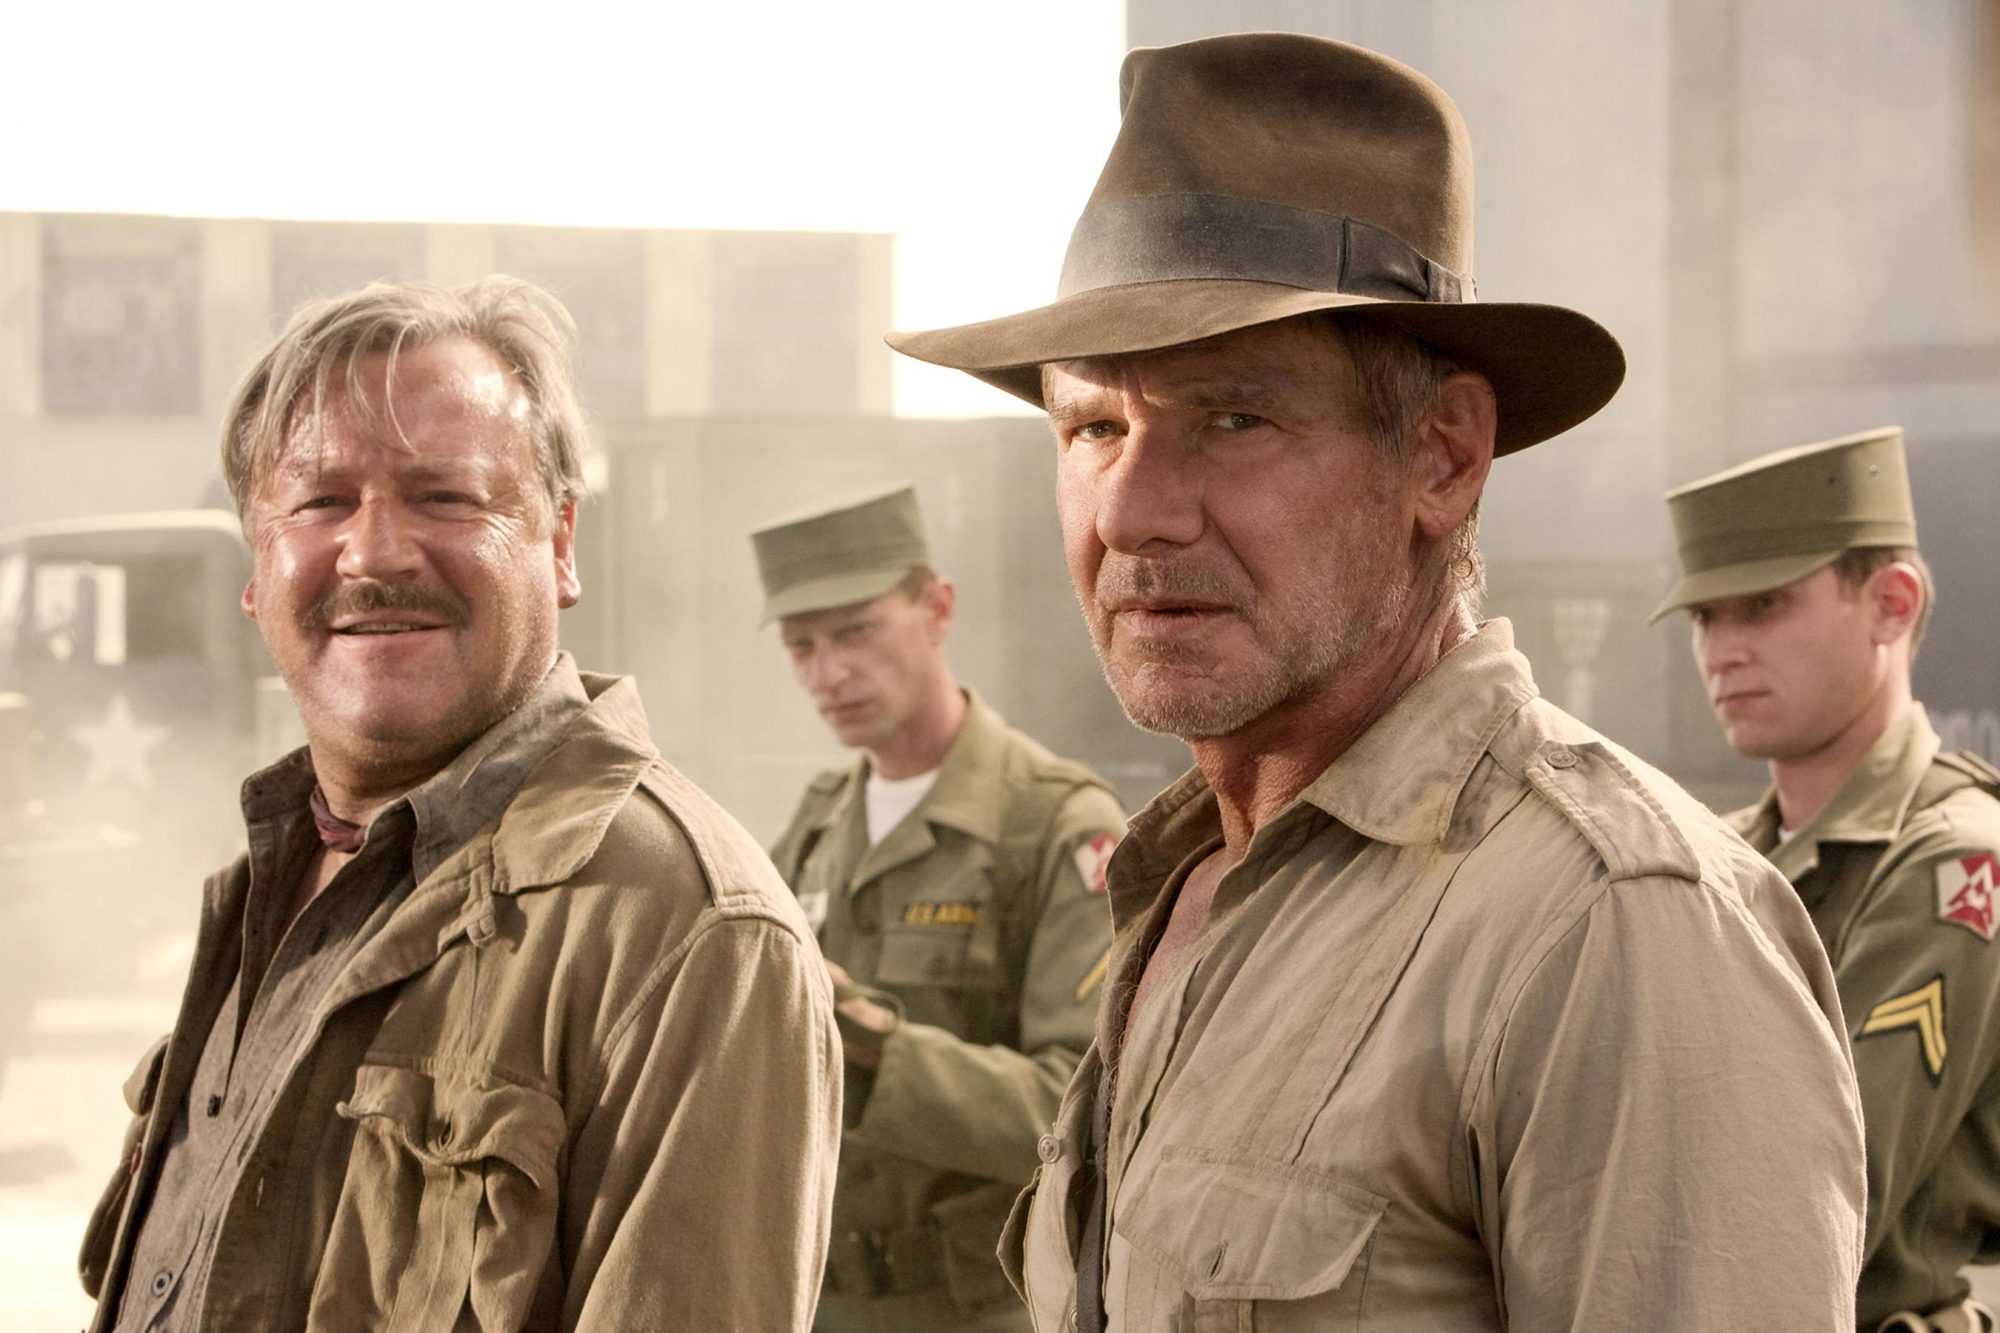 INDIANA JONES AND THE KINGDOM OF THE CRYSTAL SKULL, (aka INDIANA JONES 4), center: Ray Winstone, Har